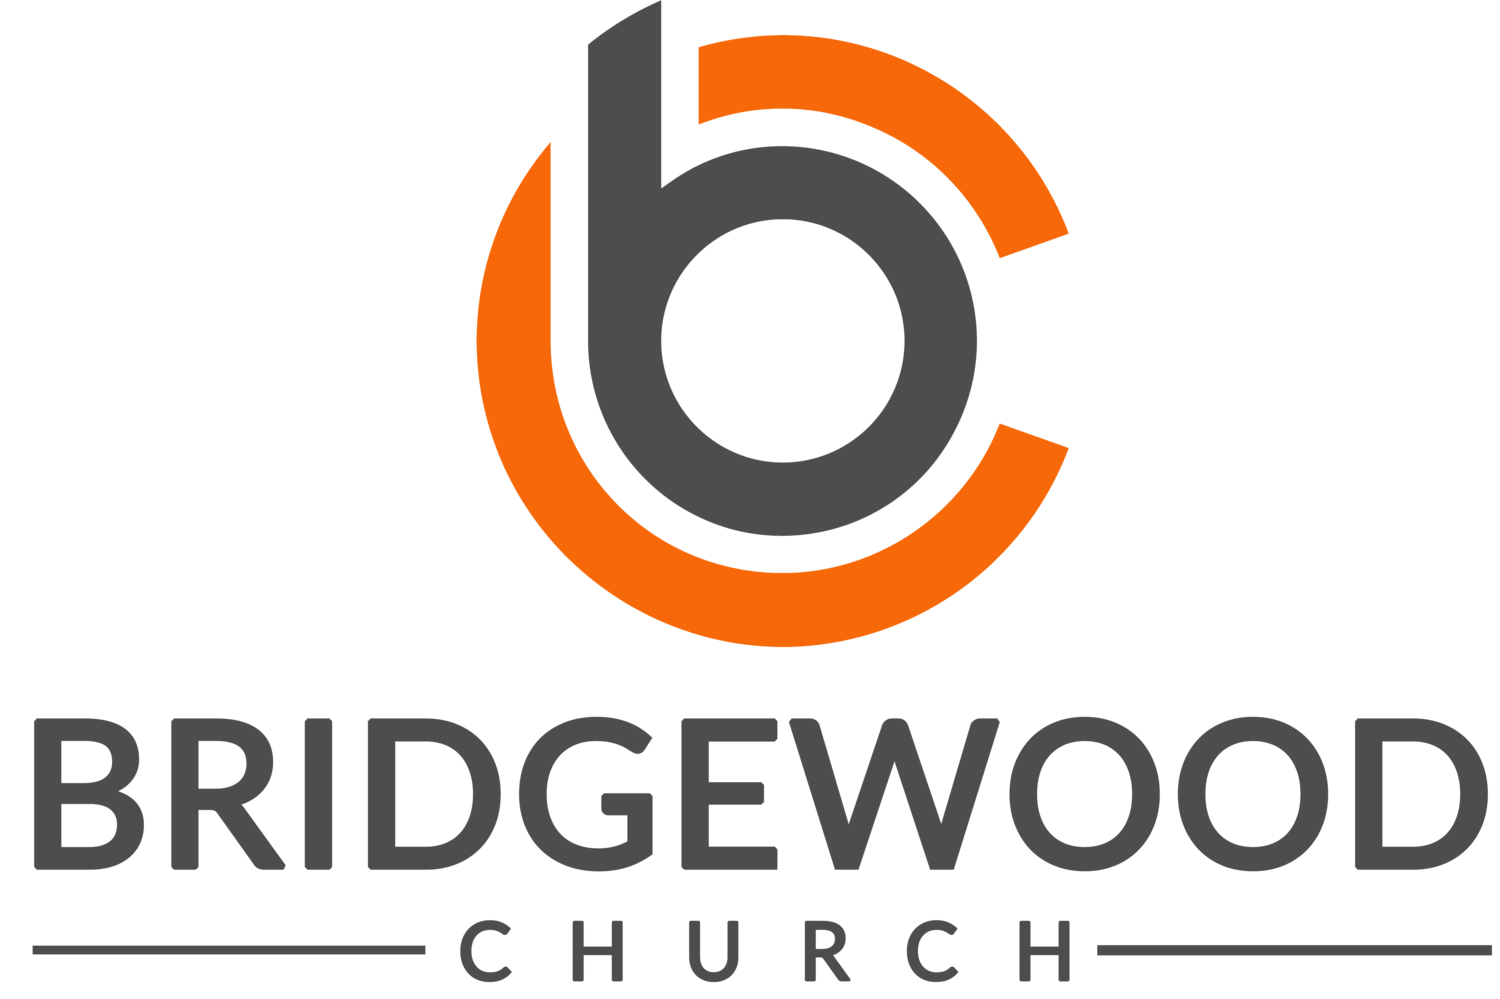 Bridgewood Church